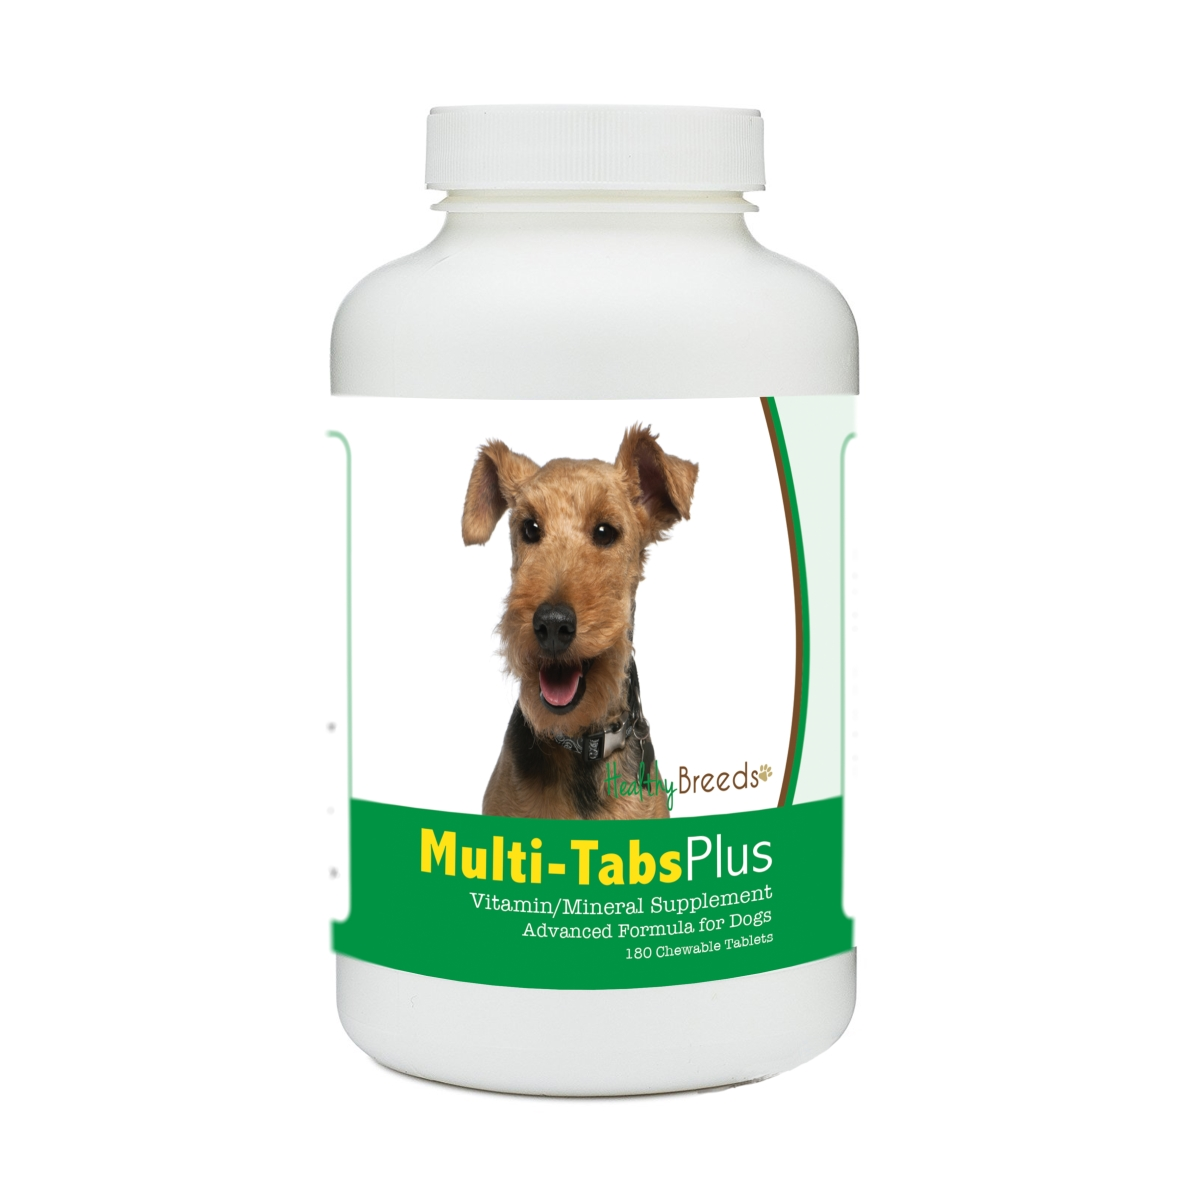 Healthy Breeds 840235176527 Welsh Terrier Multi-Tabs Plus Chewable Tablets - 180 Count